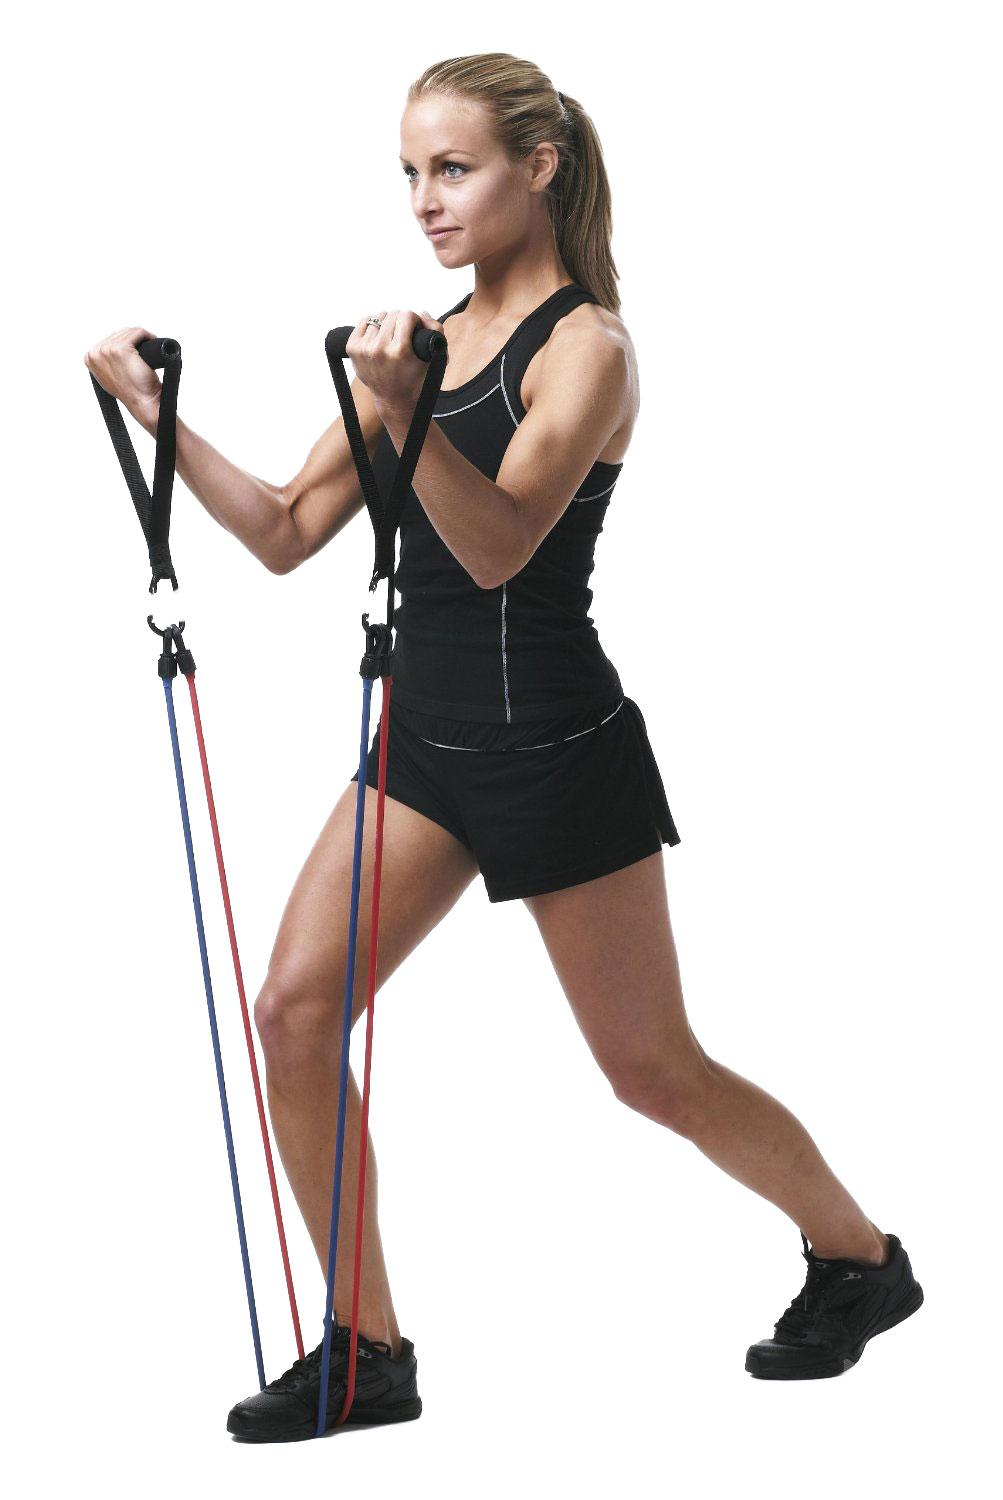 Plus, resistance bands are a snap to store! Using the Right Resistance Bands. Resistance bands should be chosen based on your existing strength in the muscle groups being targeted. When performing the exercise, the band should be secured so that the length of the band is adjusted to give resistance even at the bottom of the exercise.